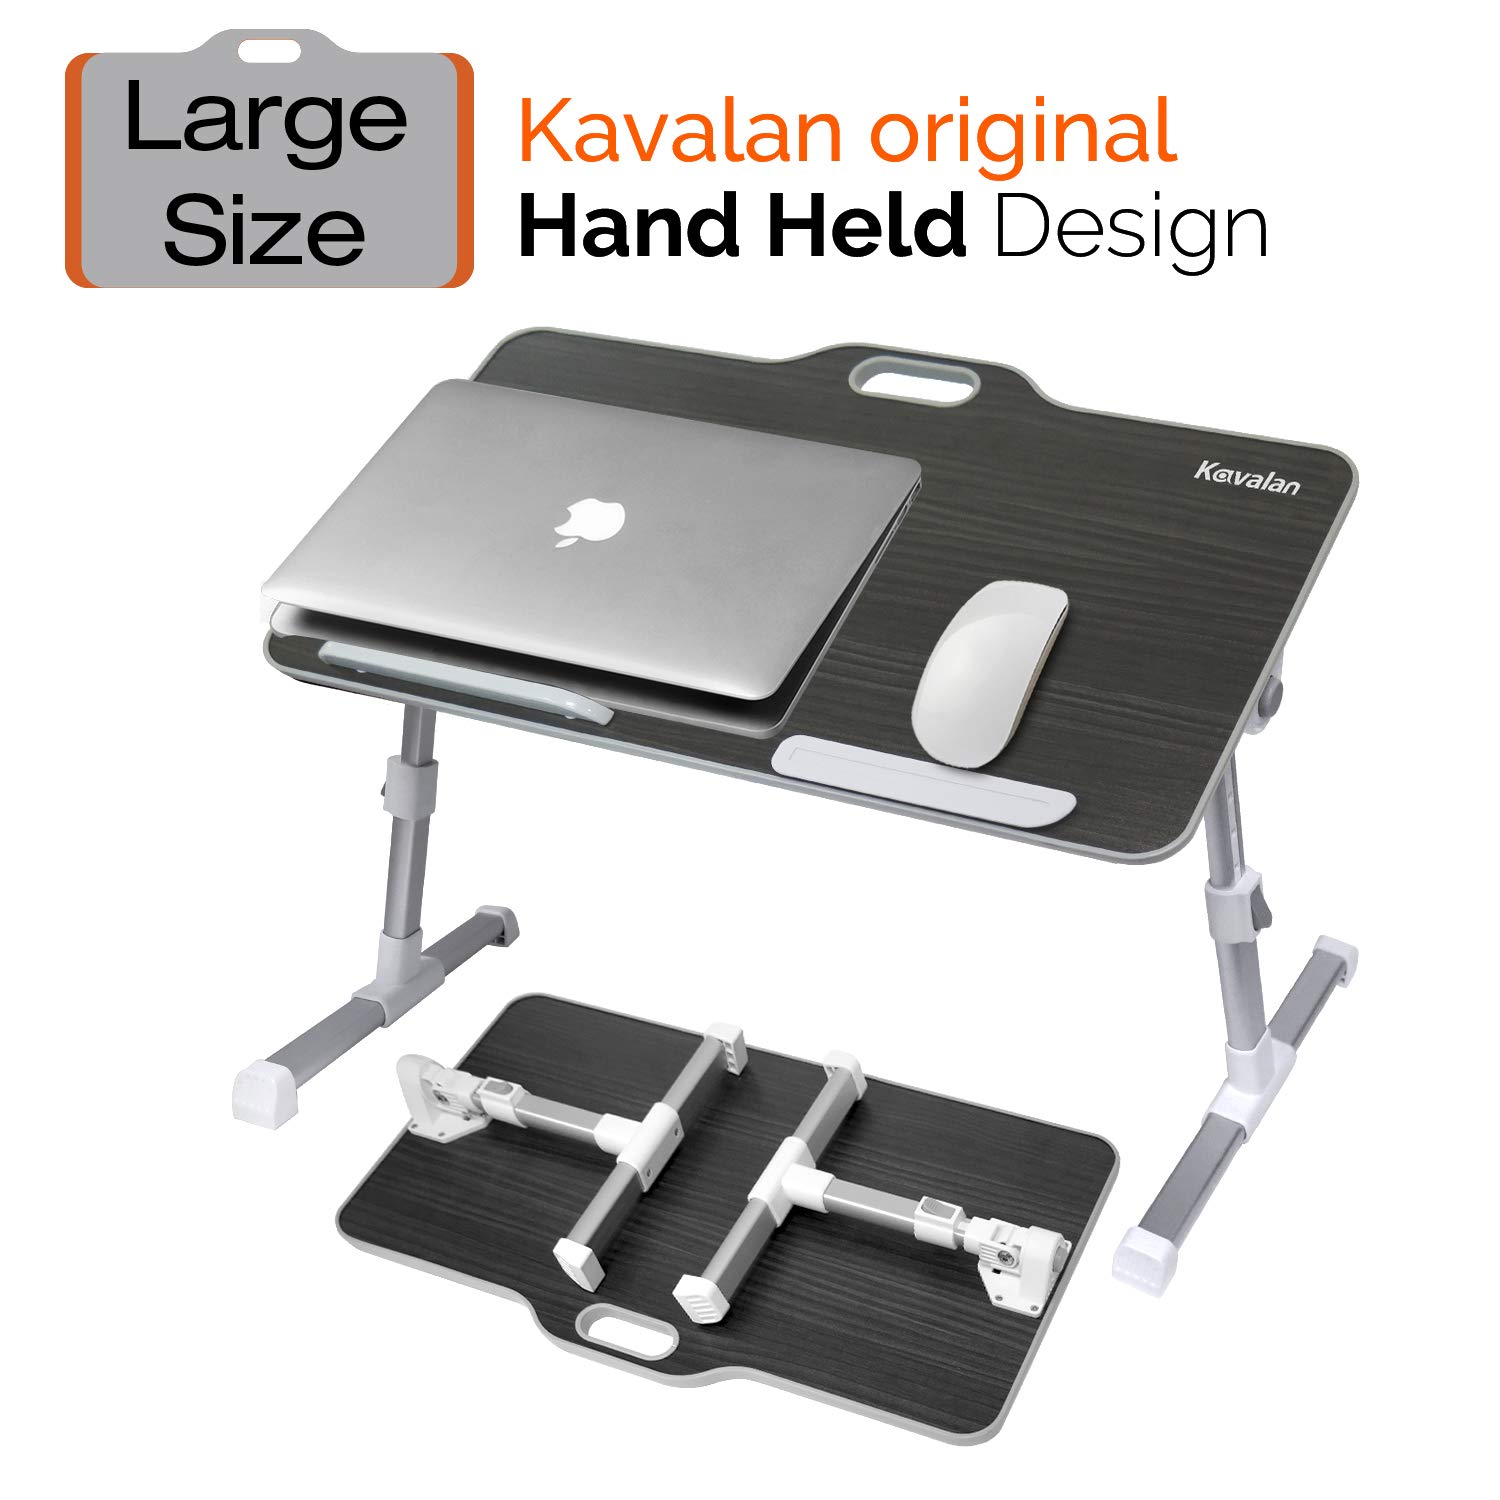 Perfect lapdesk for sitting on sofa or in bed